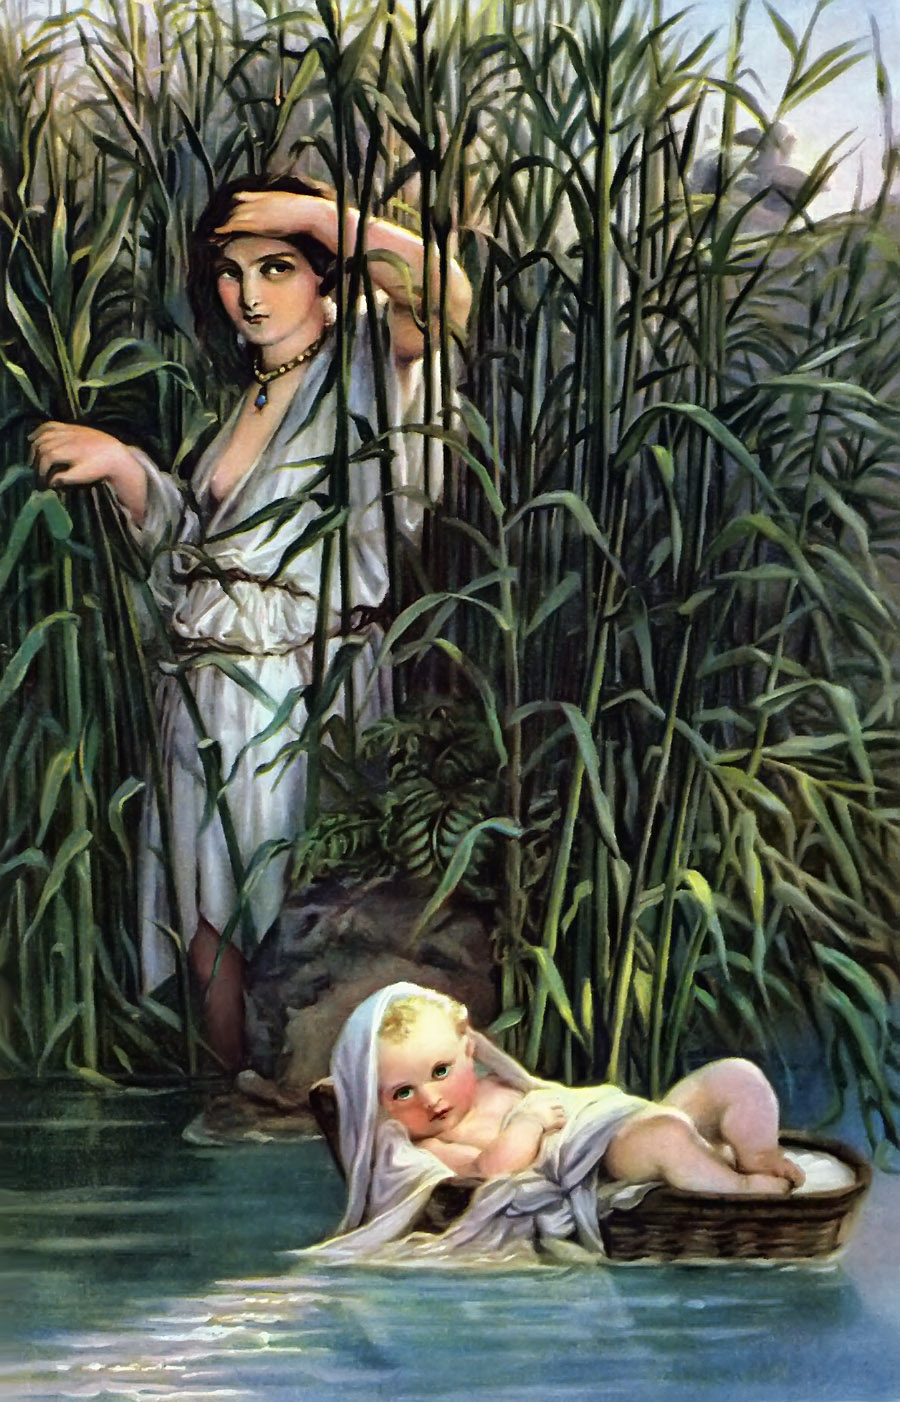 Moses in the Bulrushes 19th Century painting by Hippolyte Delaroche